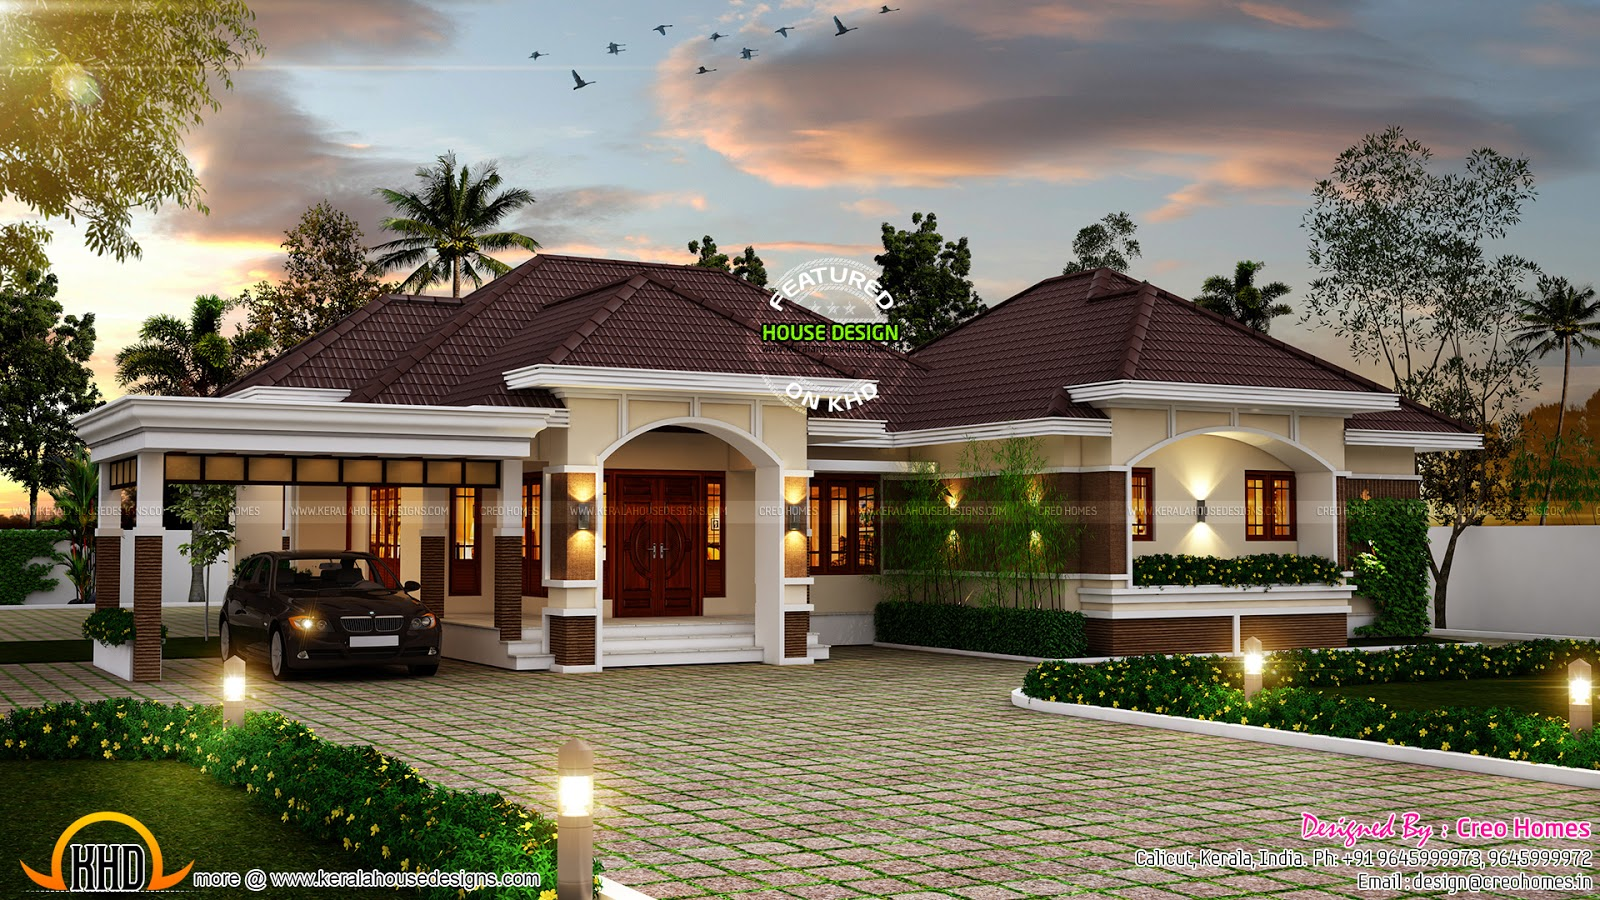 Outstanding bungalow in kerala kerala home design and for Housing plans kerala